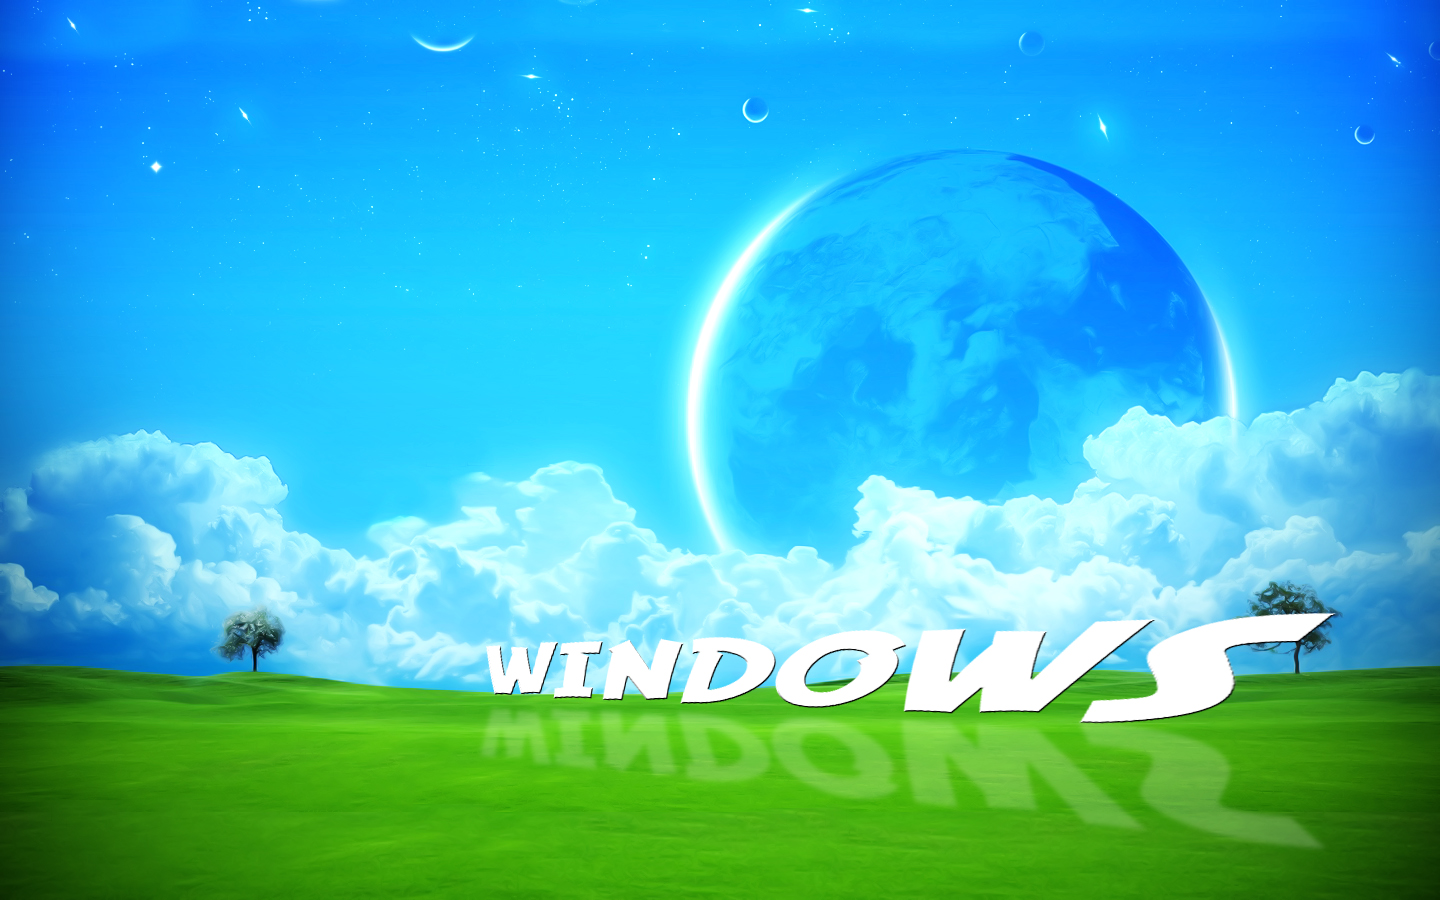 Free Animated Wallpaper Windows 10 - WallpaperSafari - photo#7